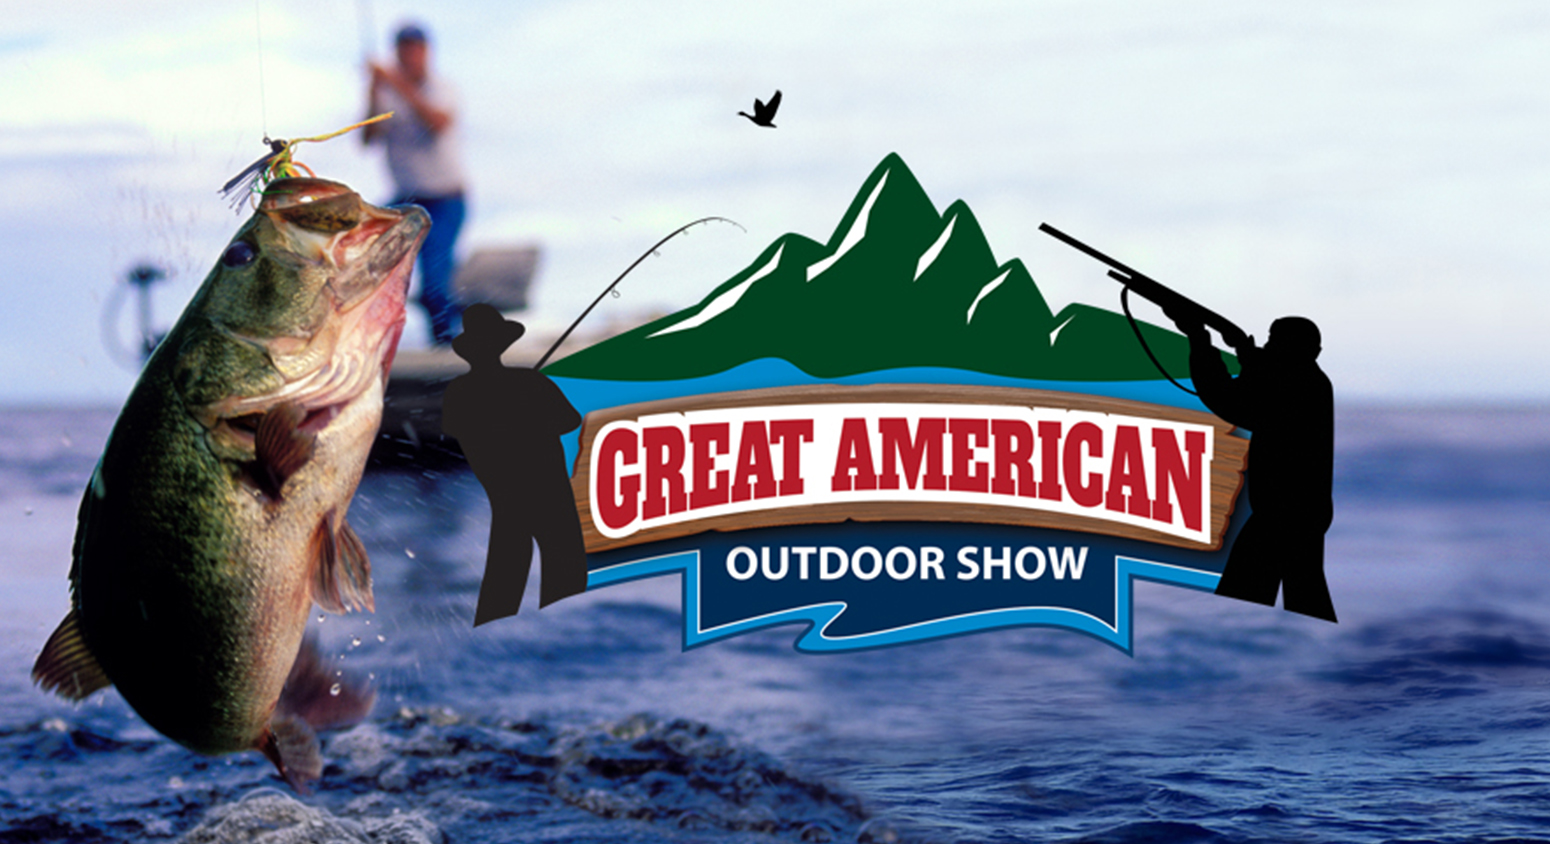 Download the Great American Outdoor Show Mobile App